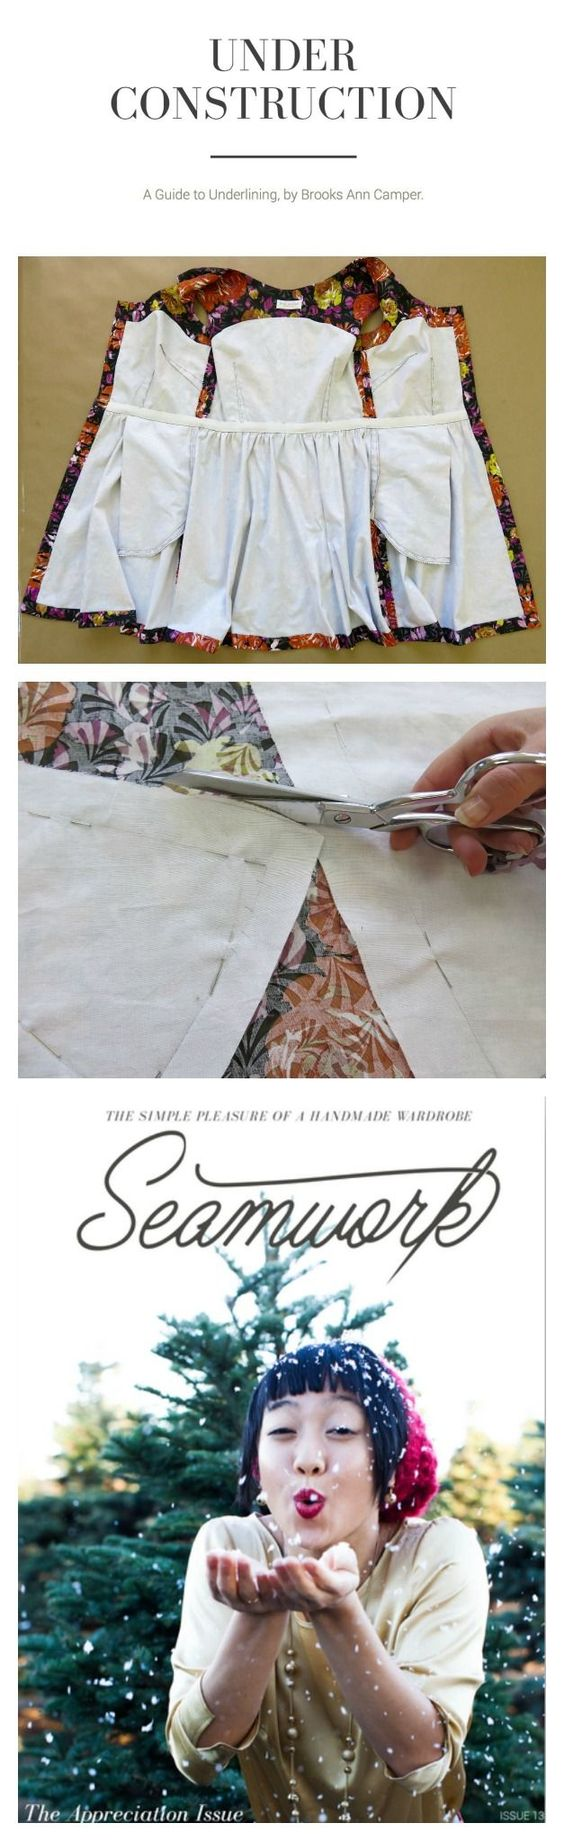 A guide to the sewing technique of underlining by Brooks Ann Camper for Seamwork Magazine